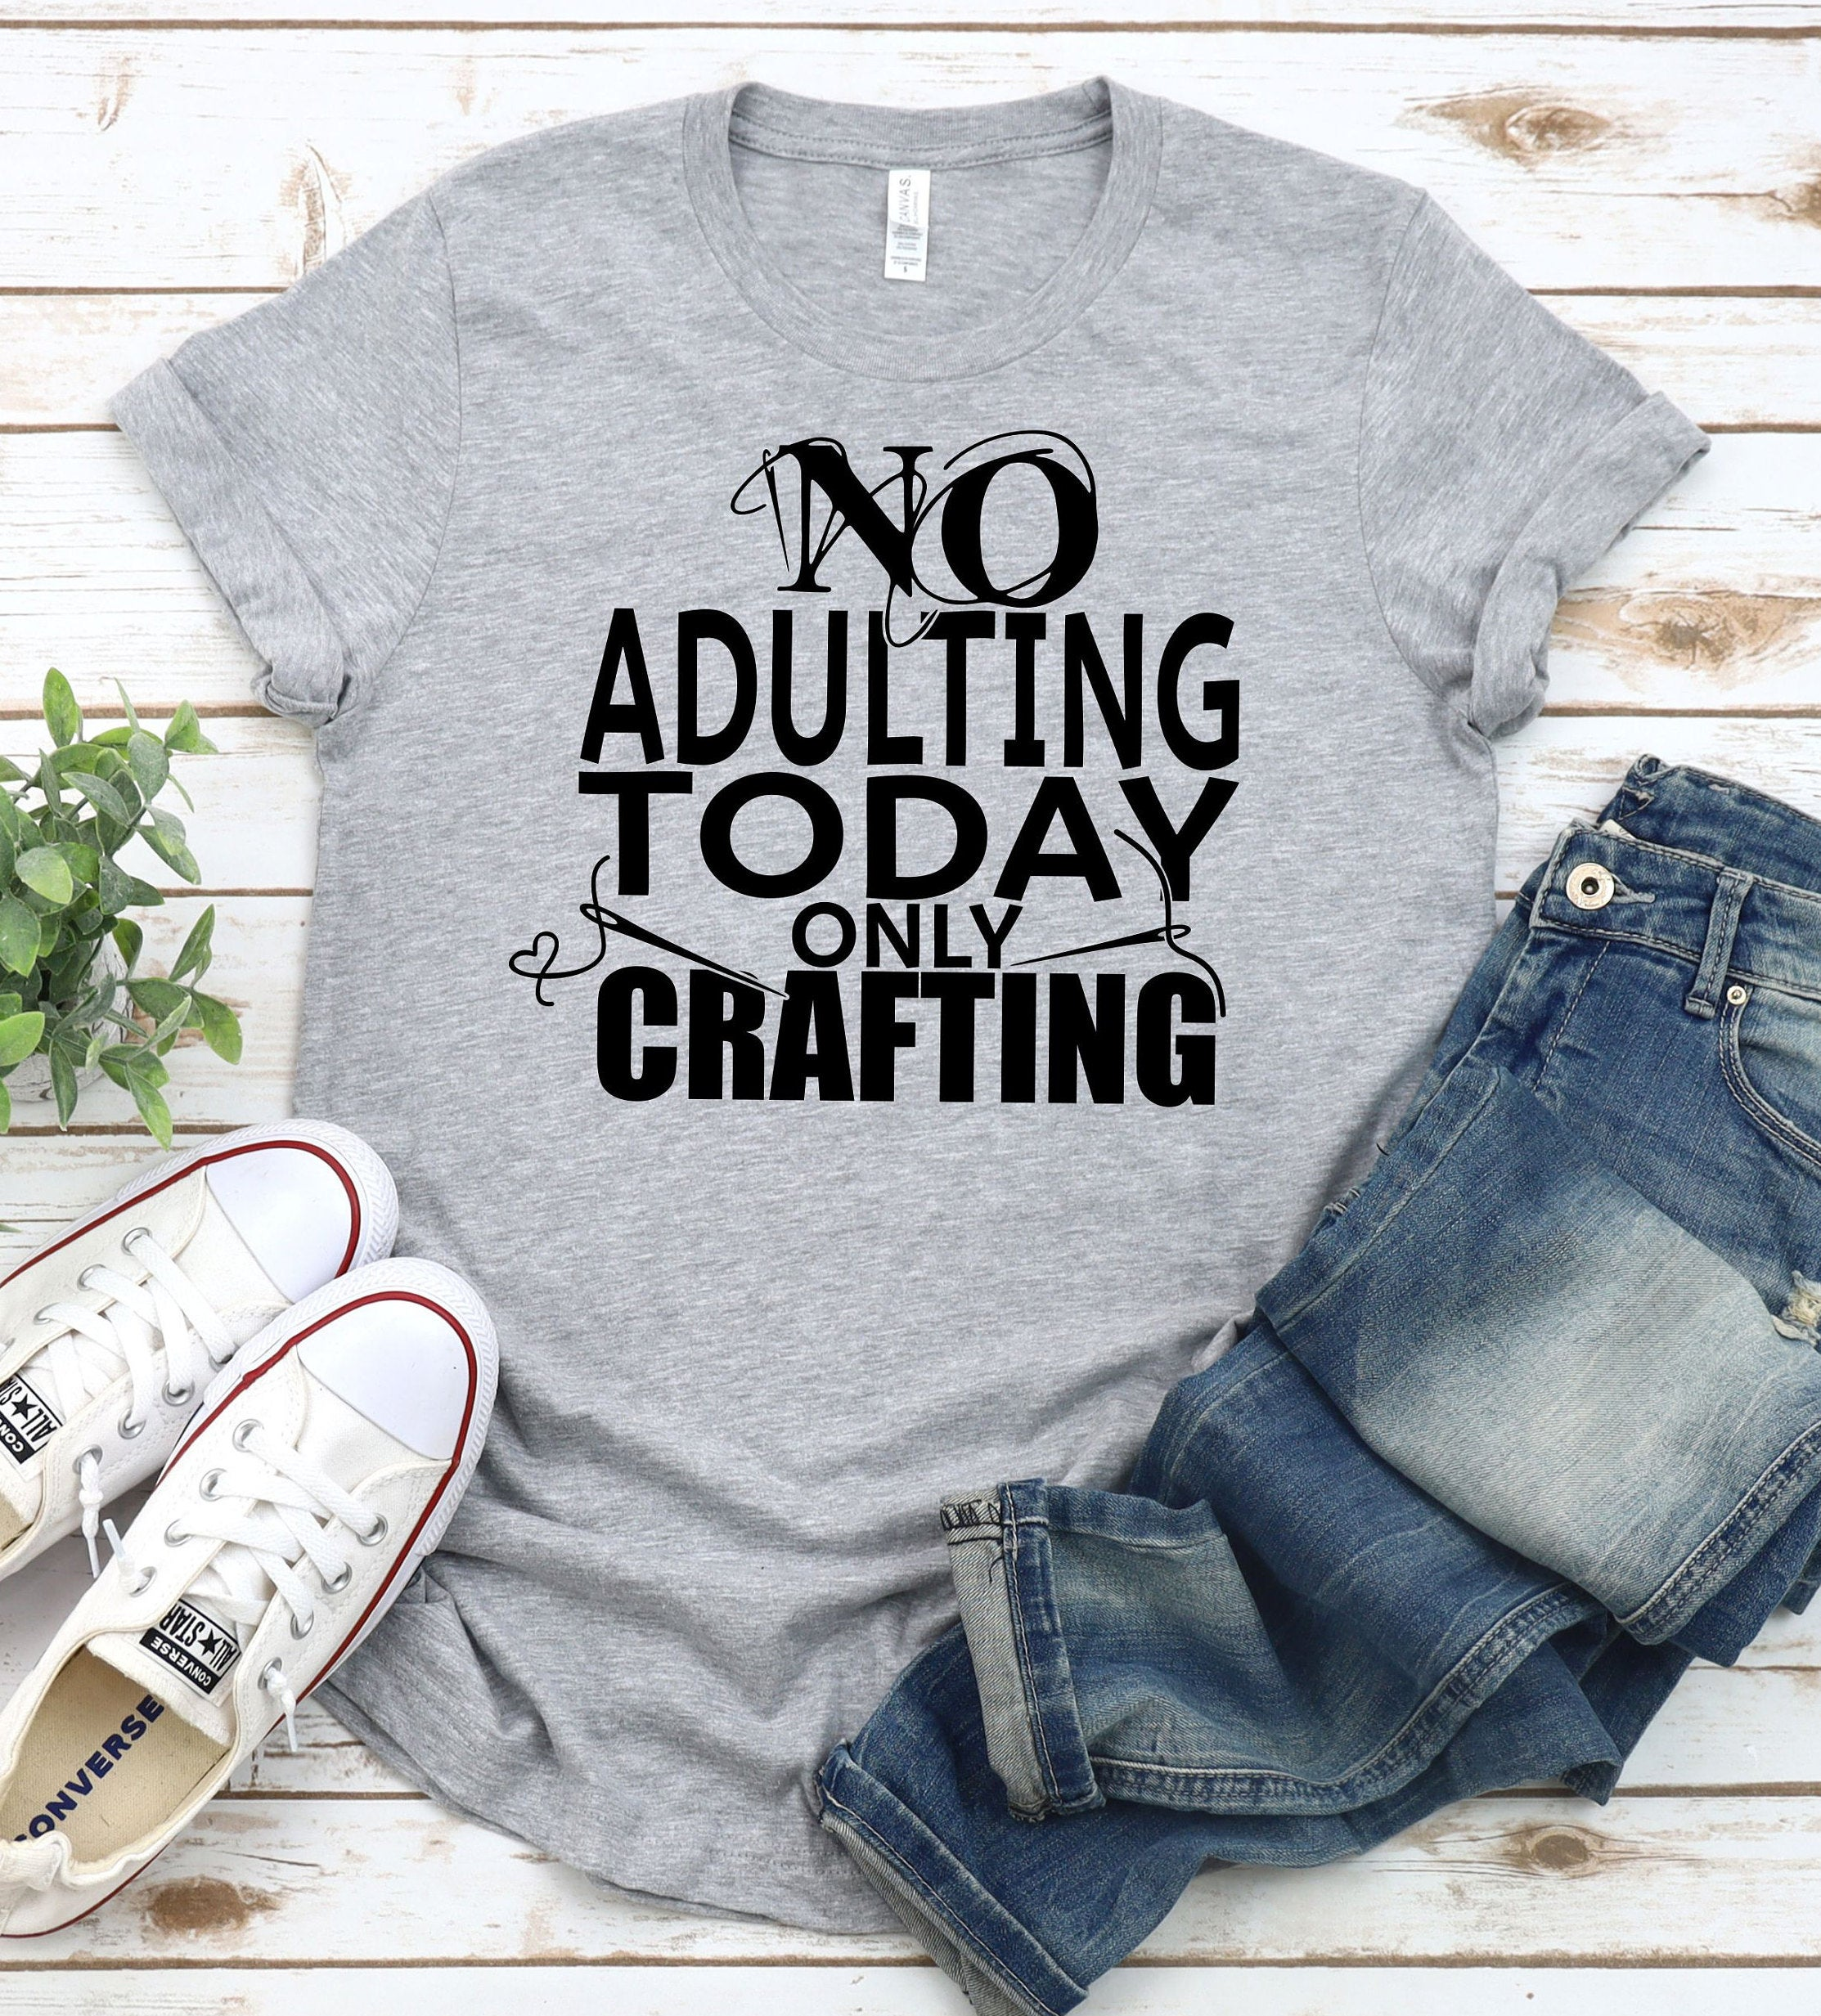 Craft-svg-no-adulting-today-only-crafting-svg-not-adulting-svg-crafty-saying-craft-svg-designs-craft-cut-file-craft-svg-for-cricut-60514076